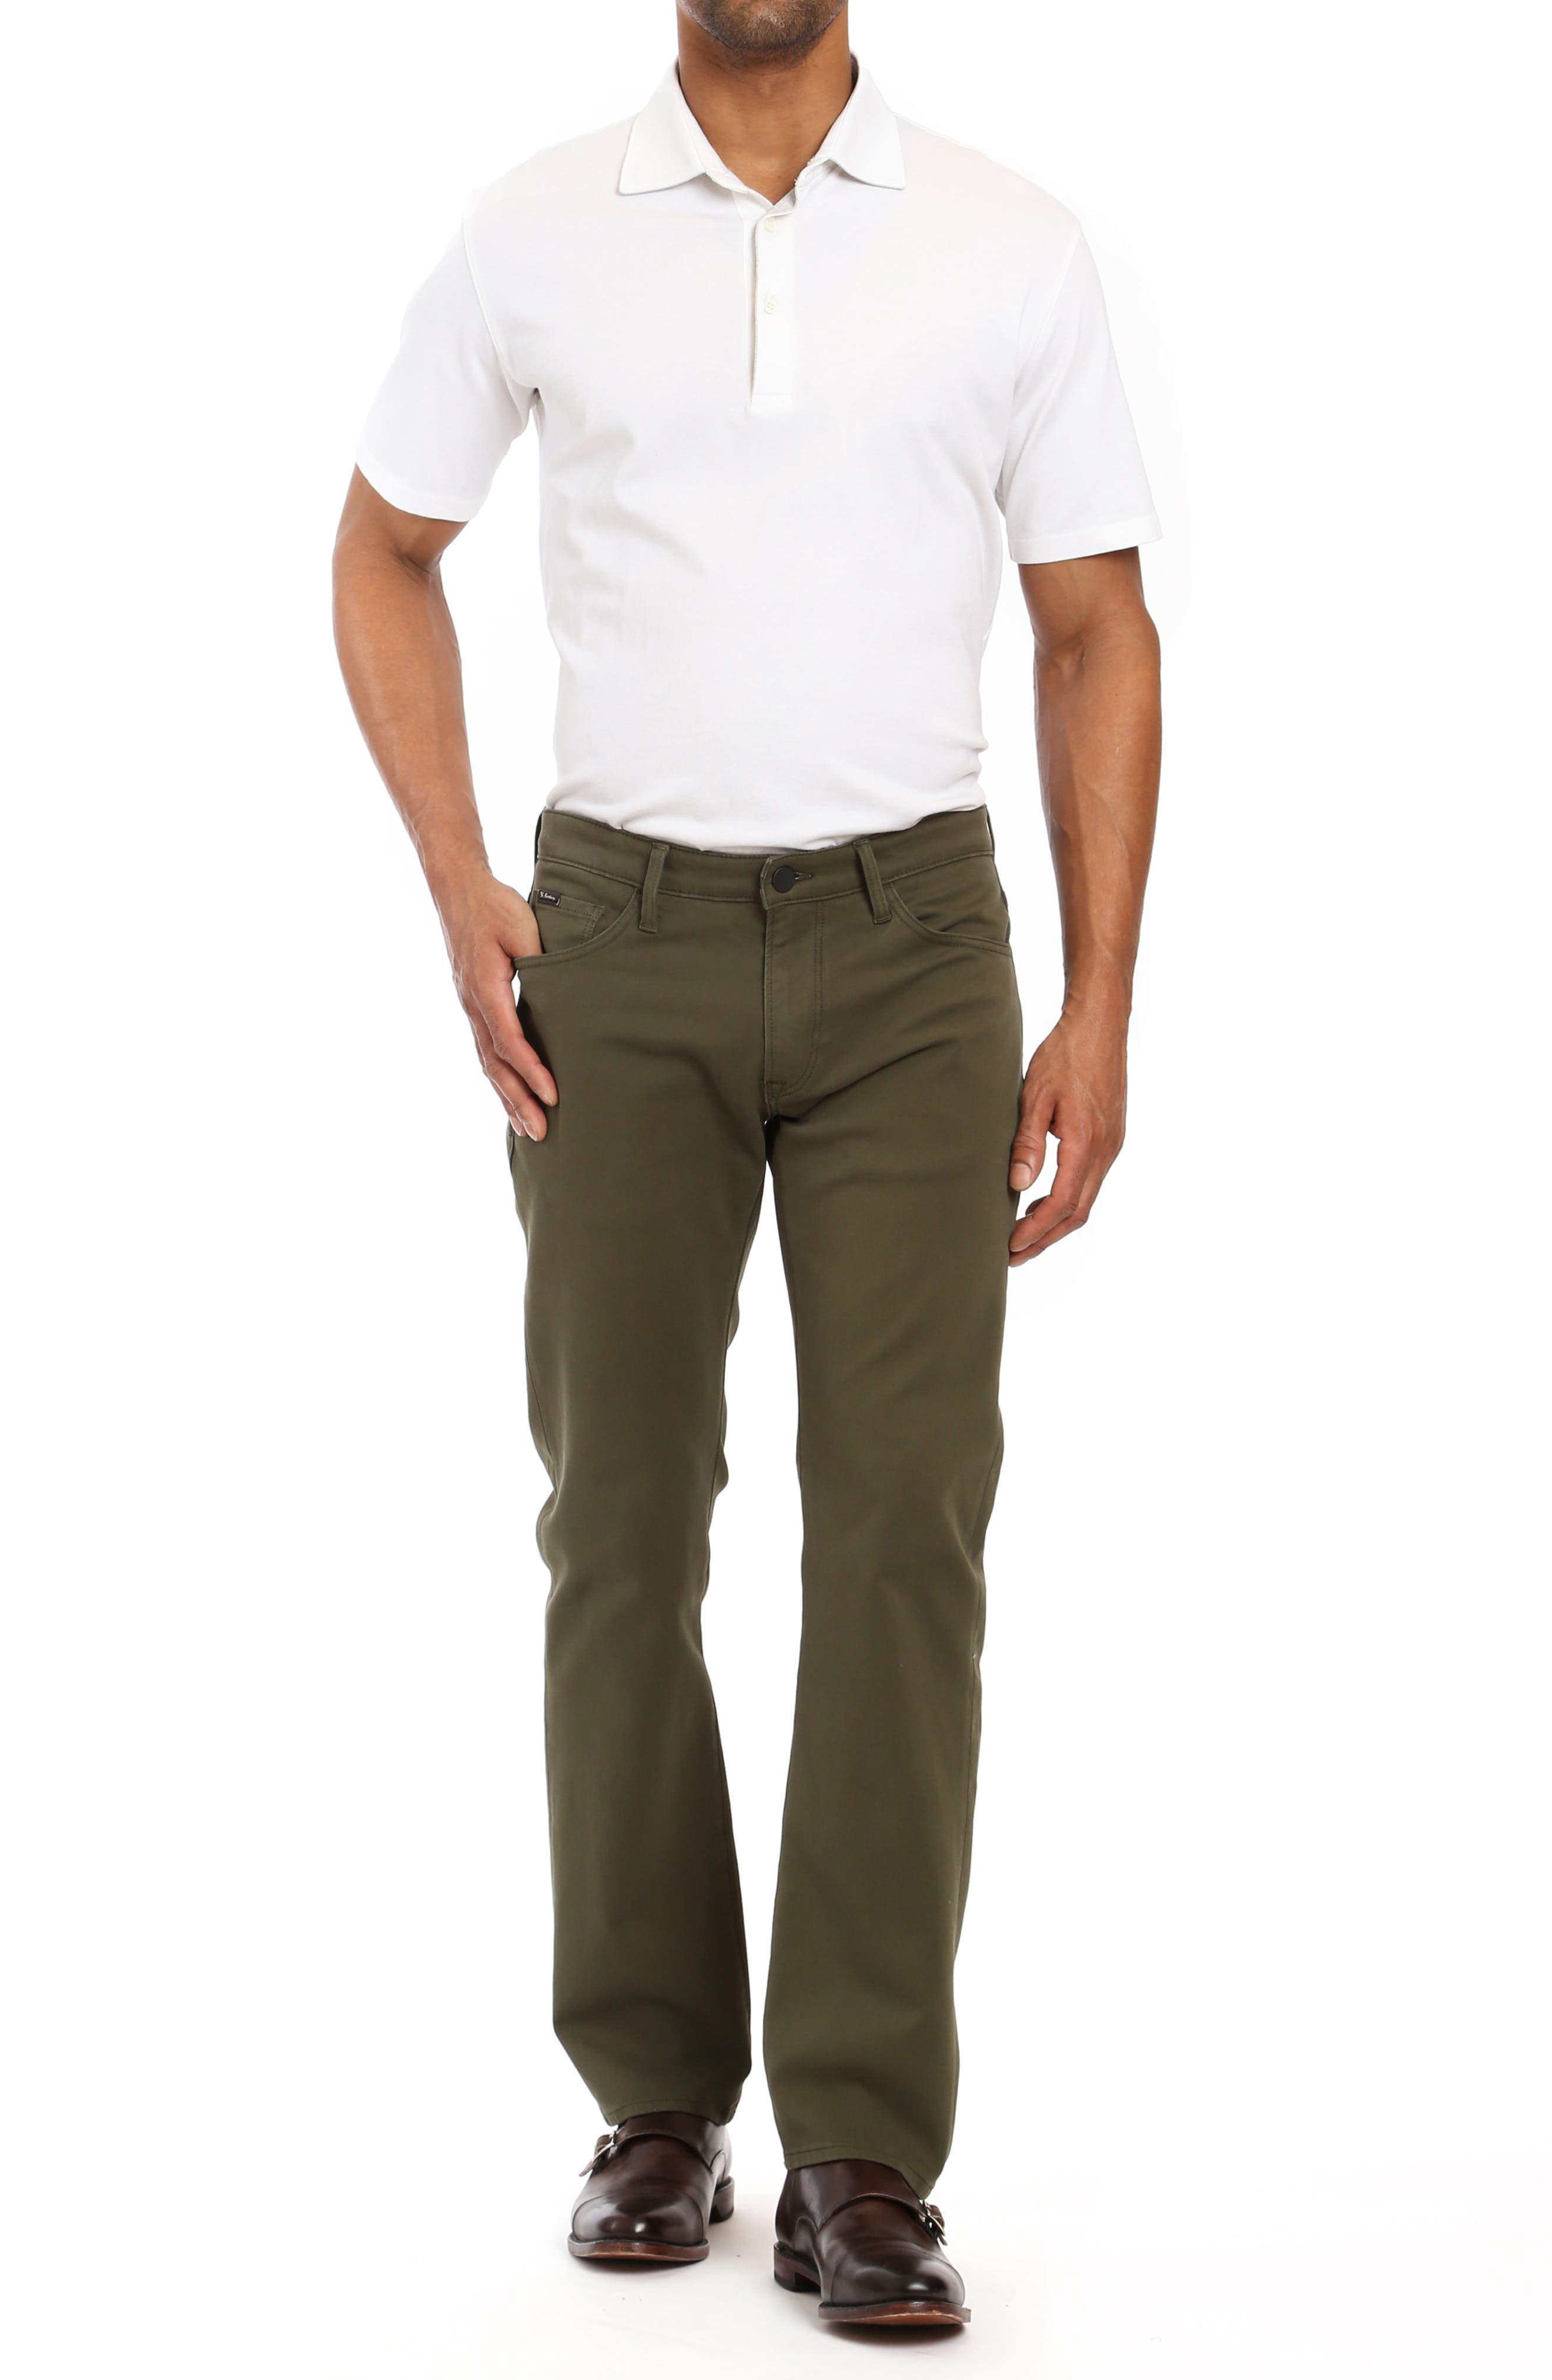 Courage Straight Leg Twill Pants,                             Alternate thumbnail 4, color,                             GREEN FINE TWILL